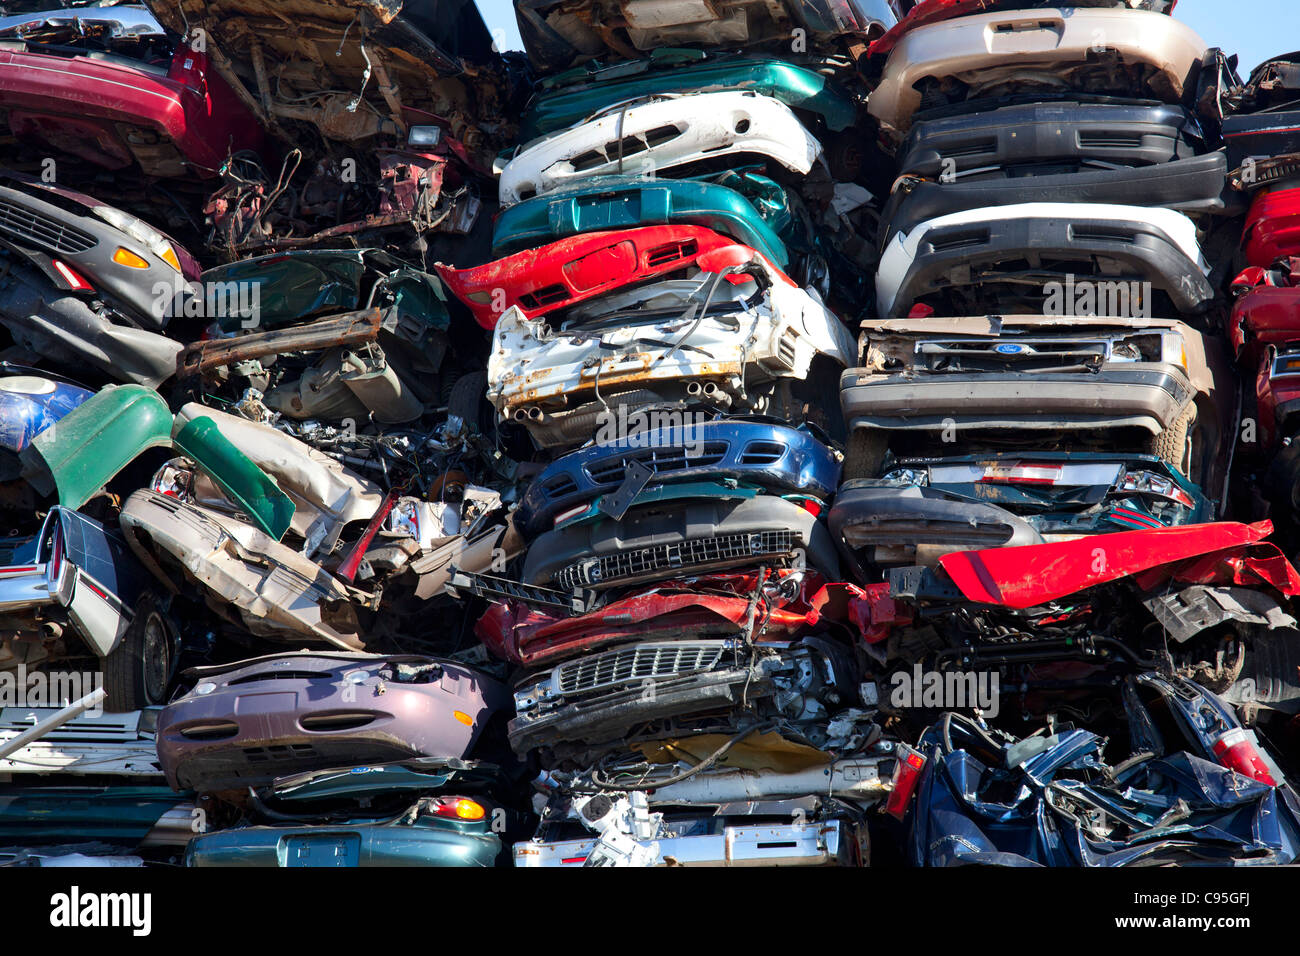 Detroit, Michigan - Junk cars crushed and ready for recycling at a scrap yard. - Stock Image